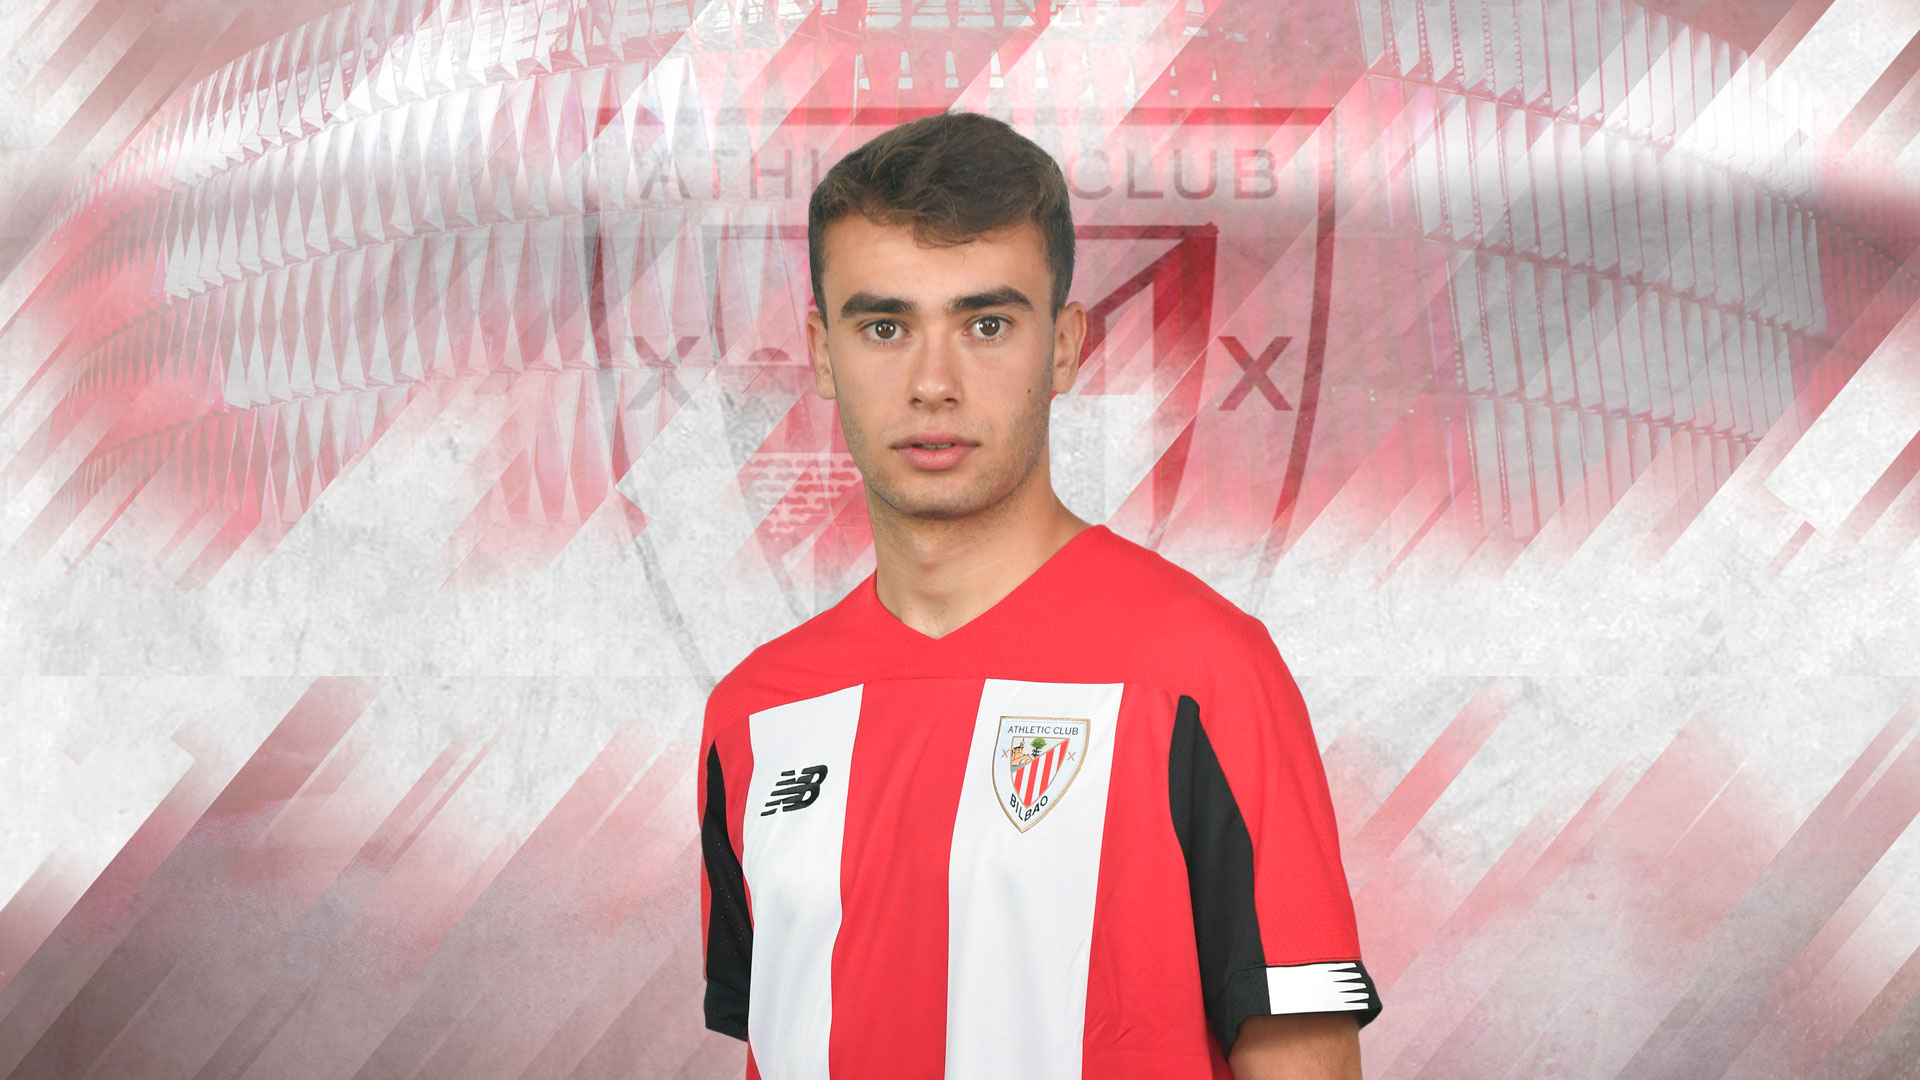 Álvaro Núñez's injury, from Bilbao Athletic